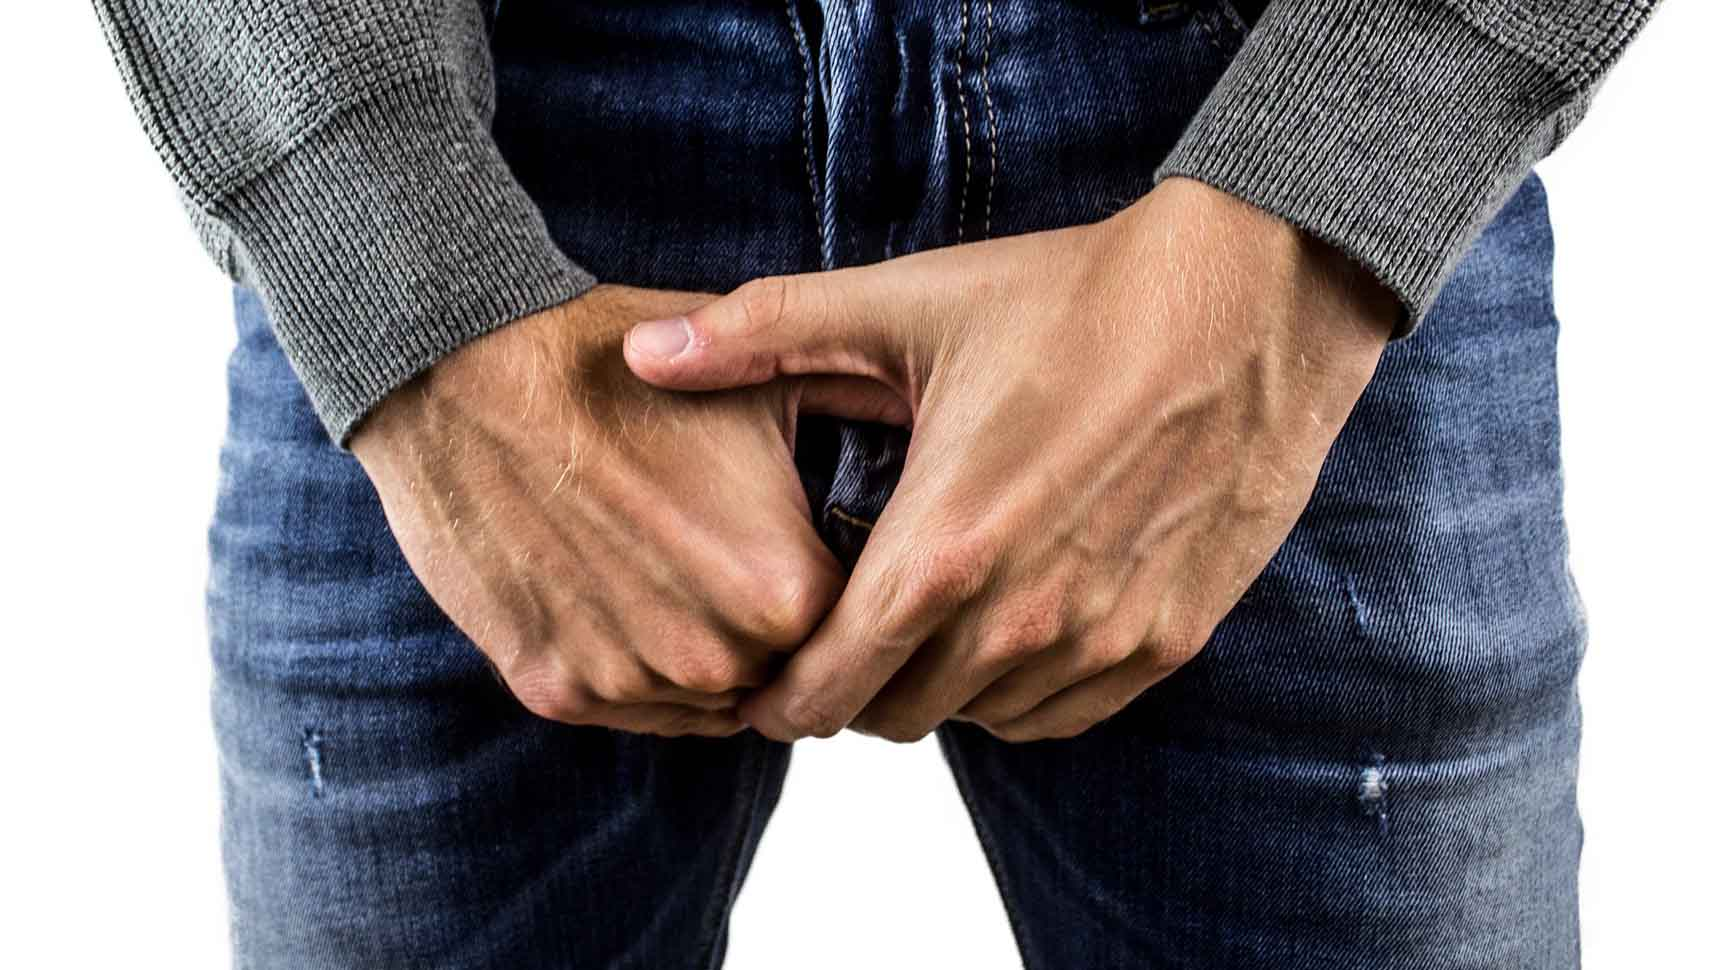 How to check your balls for signs of testicular cancer: Step-by-step guide helps you look for lumps